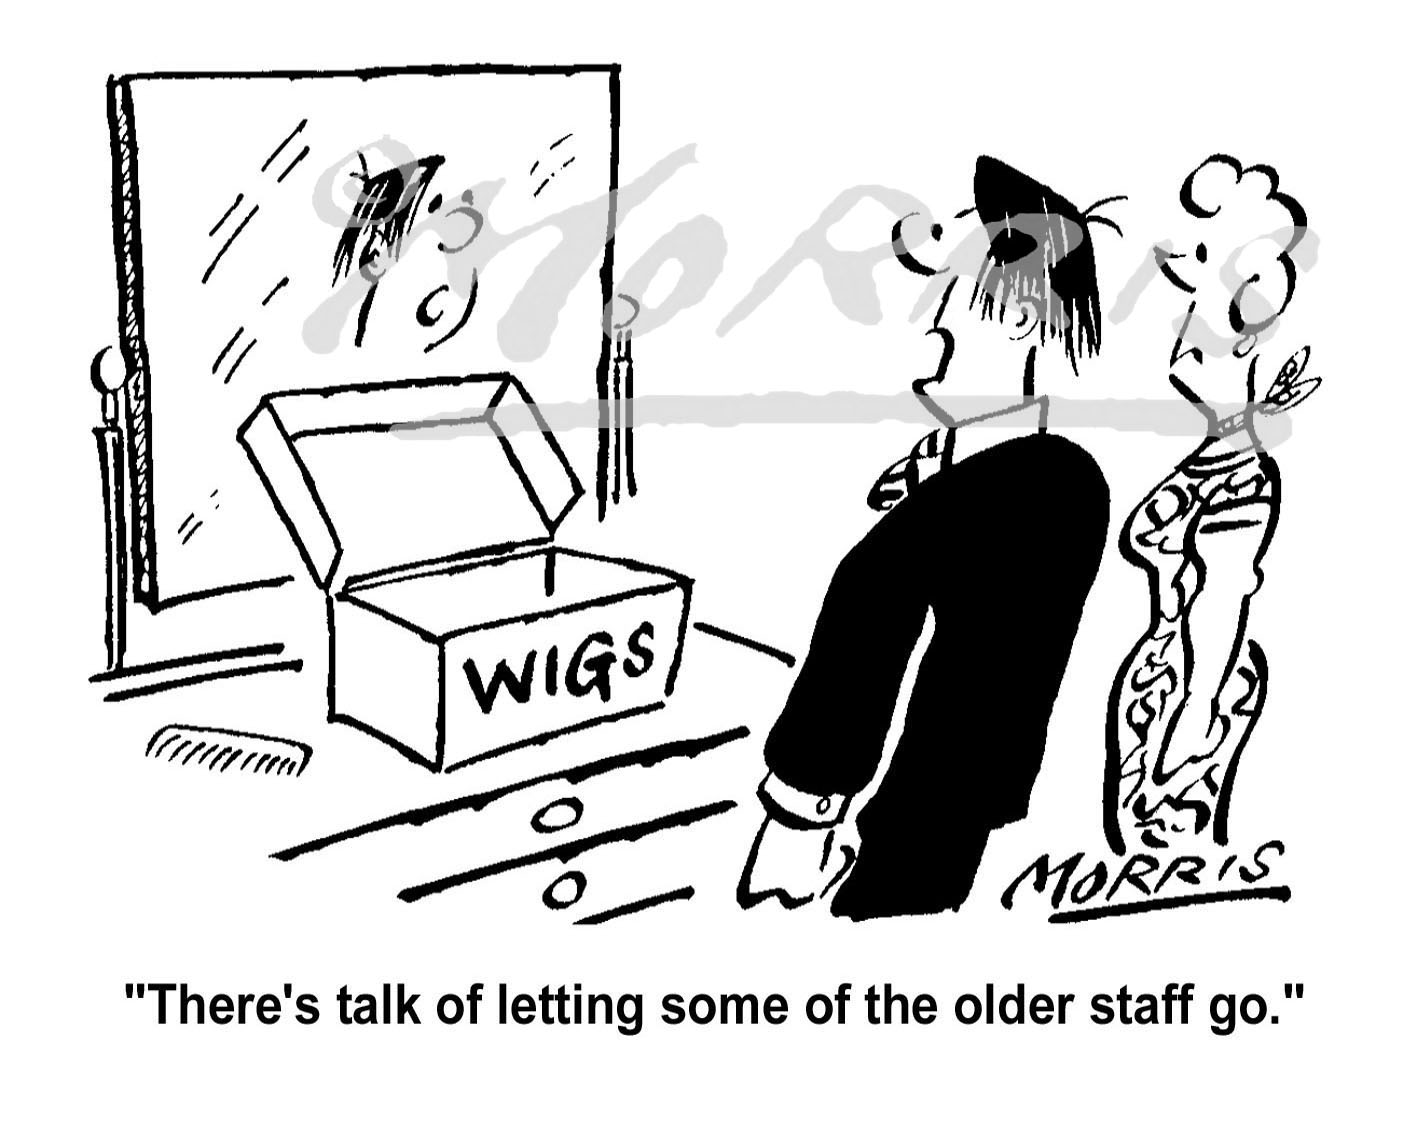 Older staff redundancy cartoon – Ref: 1455bw